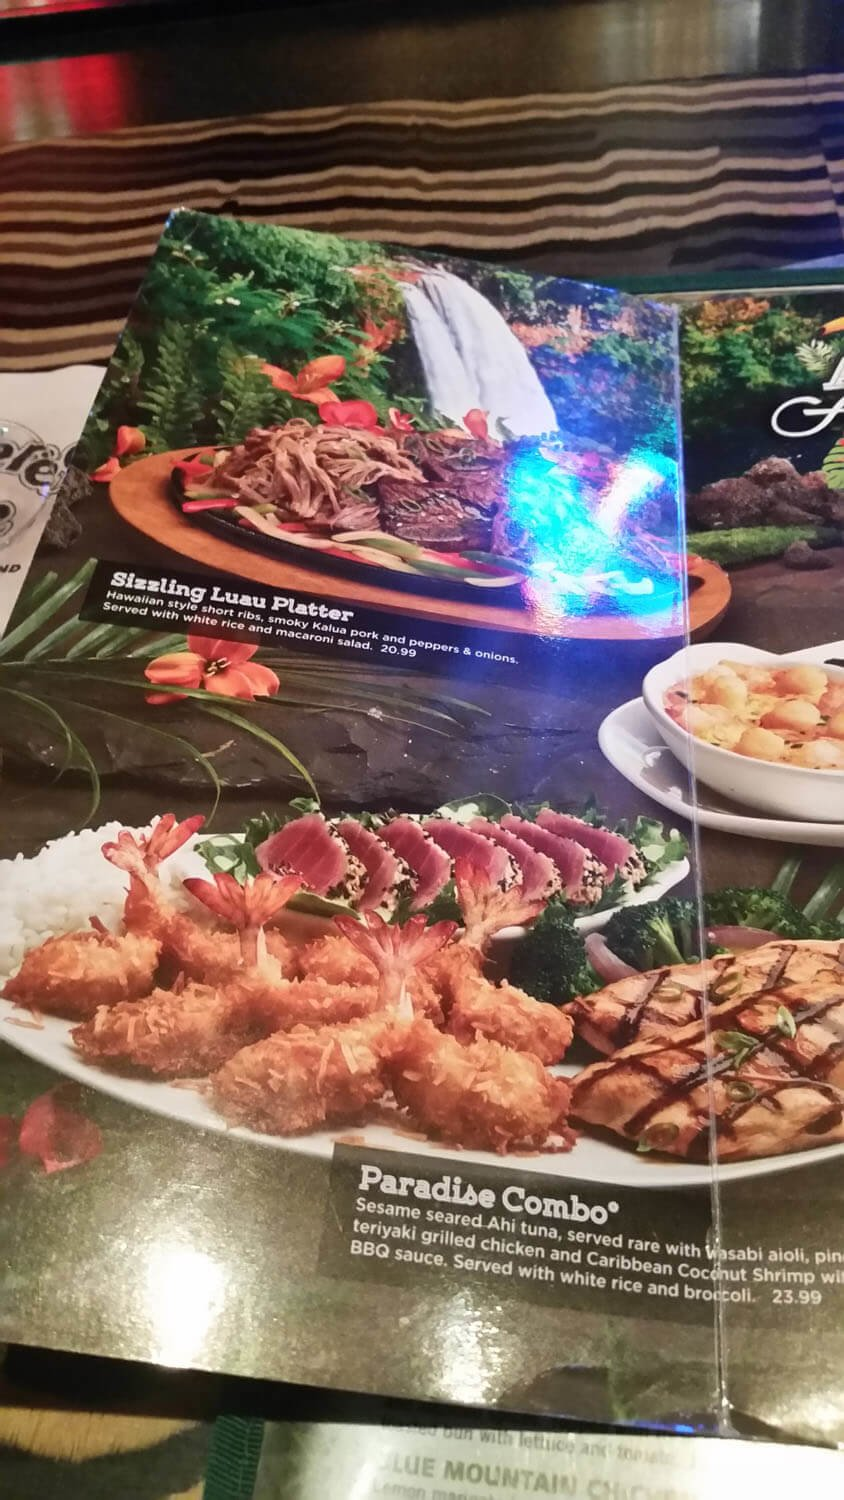 Rainforest Cafe Menu – 19